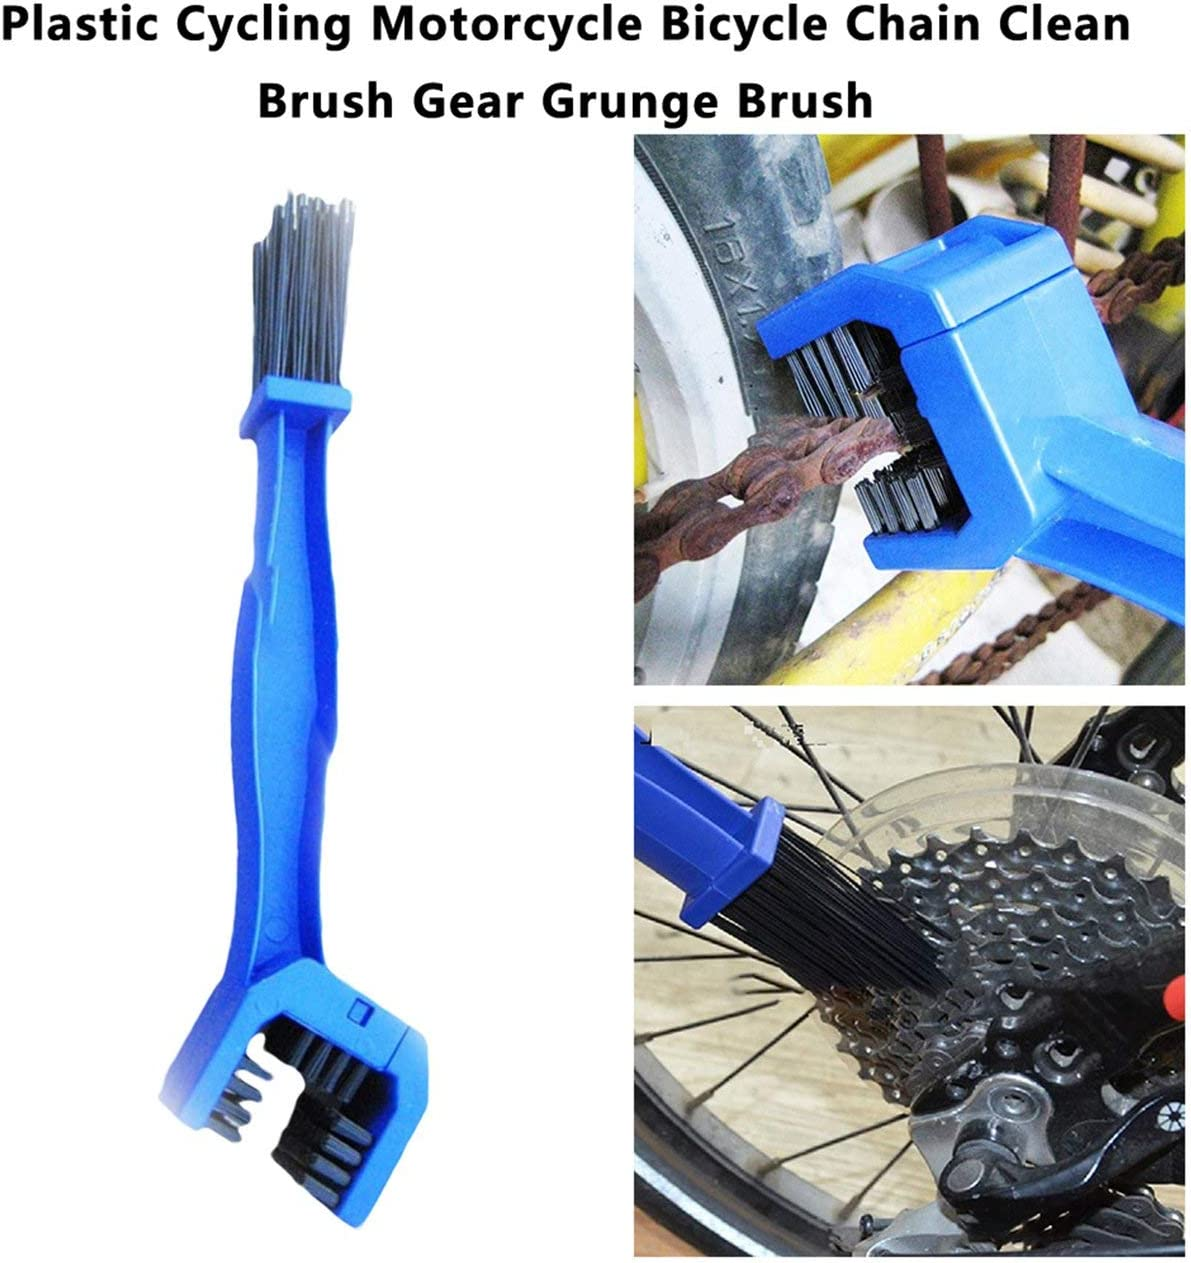 Jasnyfall Blue Plastic Cycling Motorcycle Bicycle Chain Clean Brush Gear Grunge Brush Cleaner Outdoor Cleaner Scrubber Tool